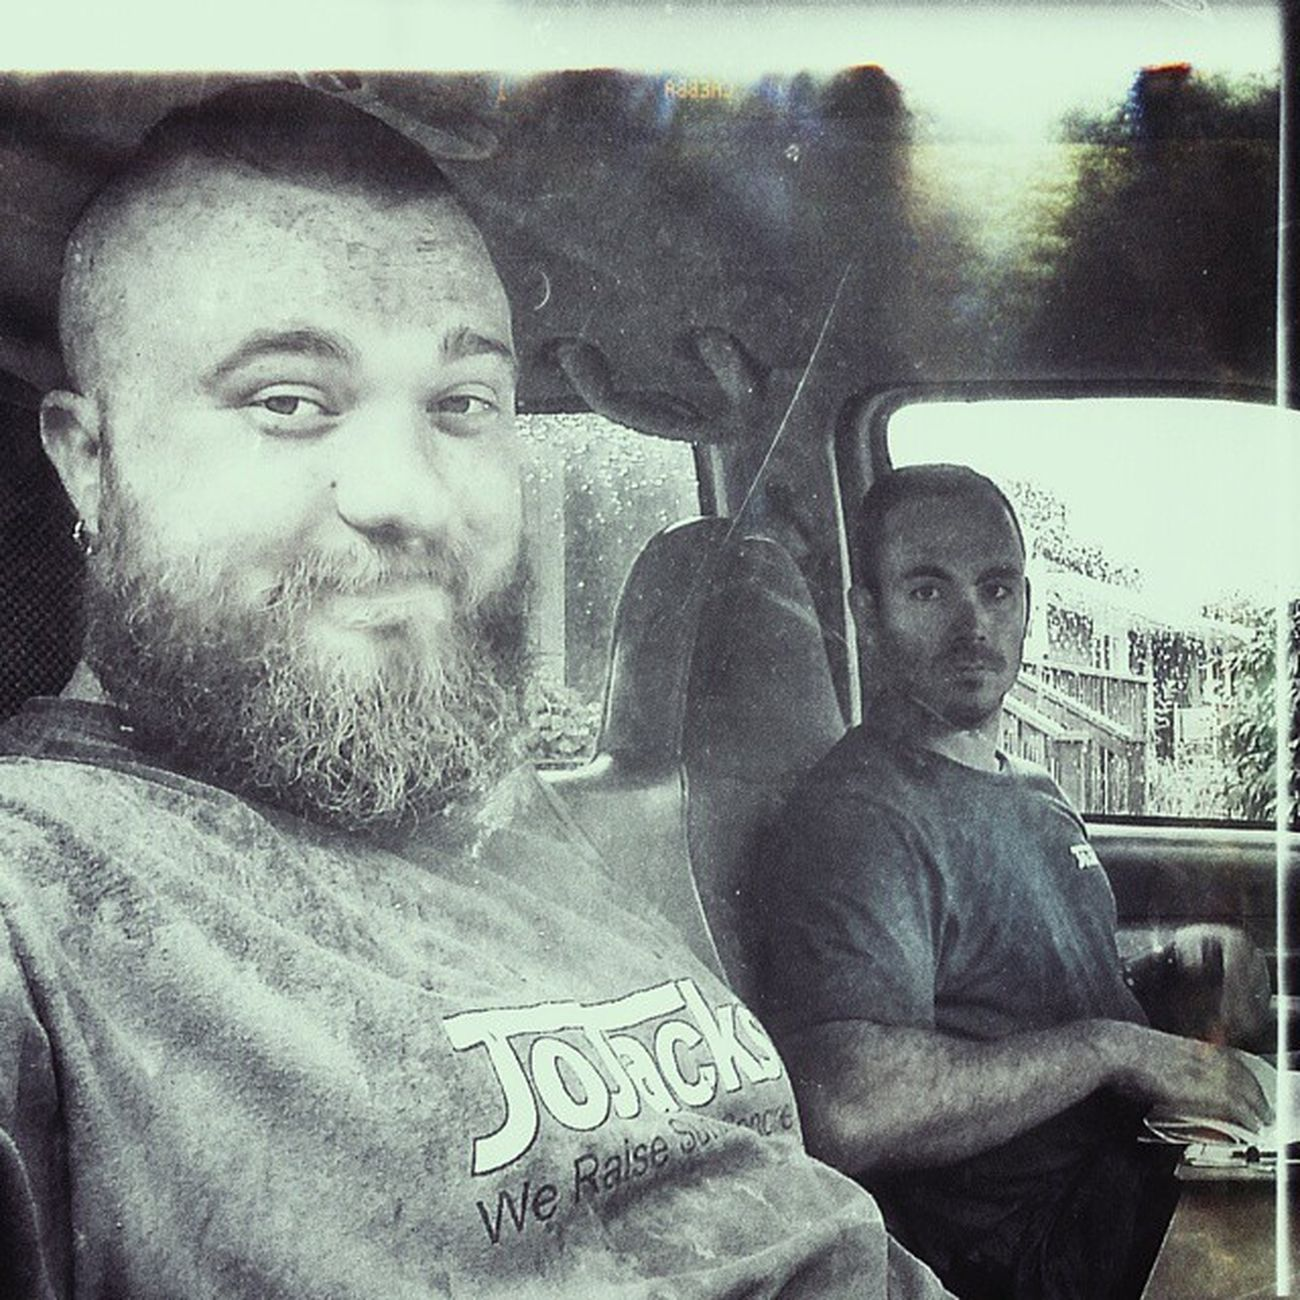 First day on the job at Jojacks ! What a blessing to get to work with my best friend @thepernz GoodTimes Wegetdirty IHaveConcreteInMyBeard